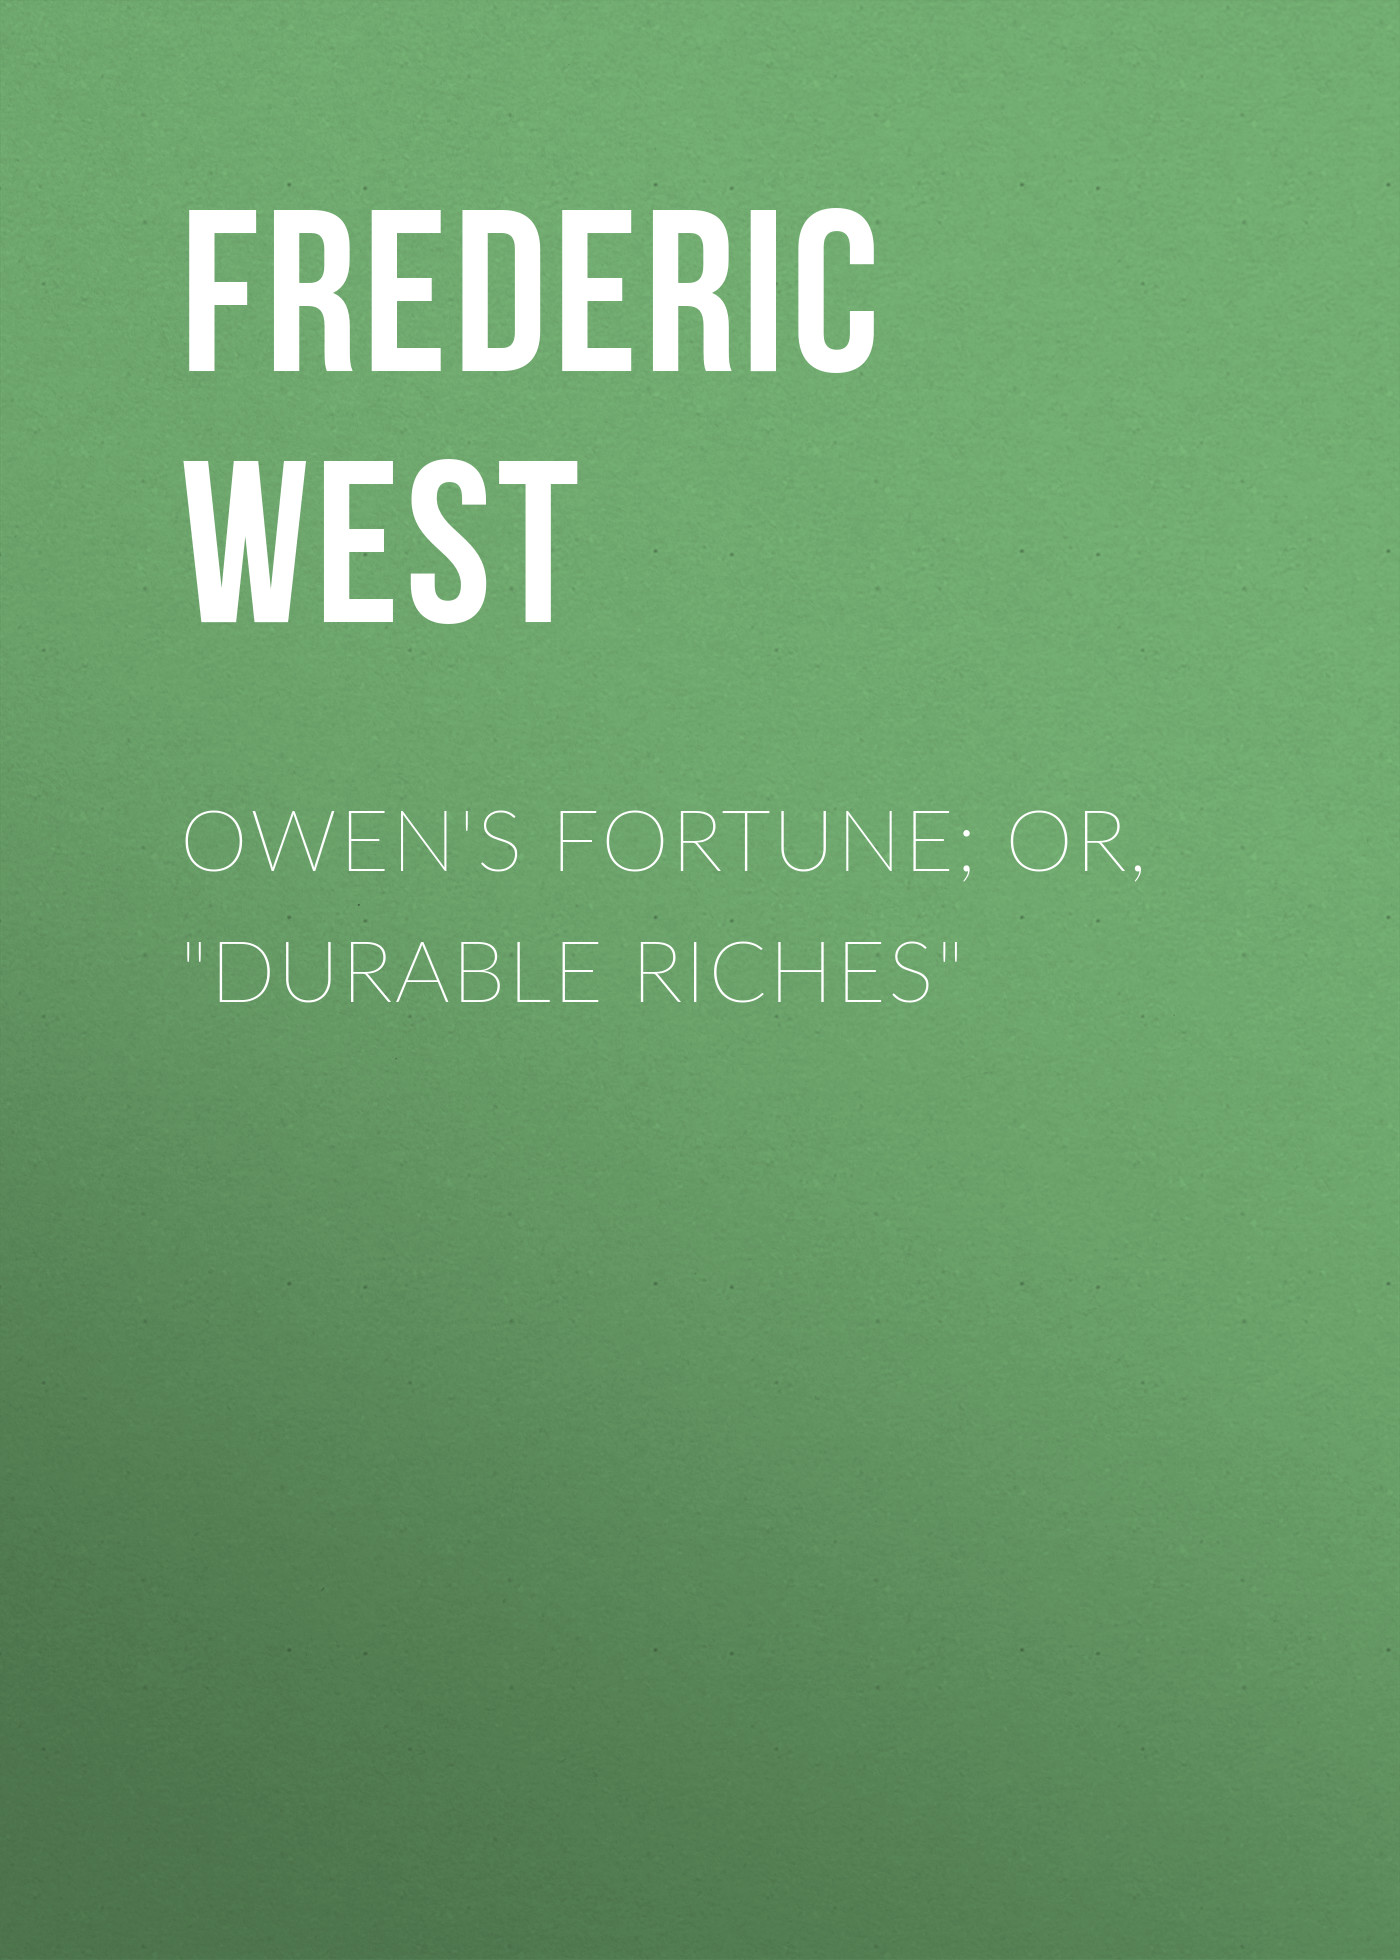 Frederic West Owen's Fortune; Or, Durable Riches frederic west owen s fortune or durable riches